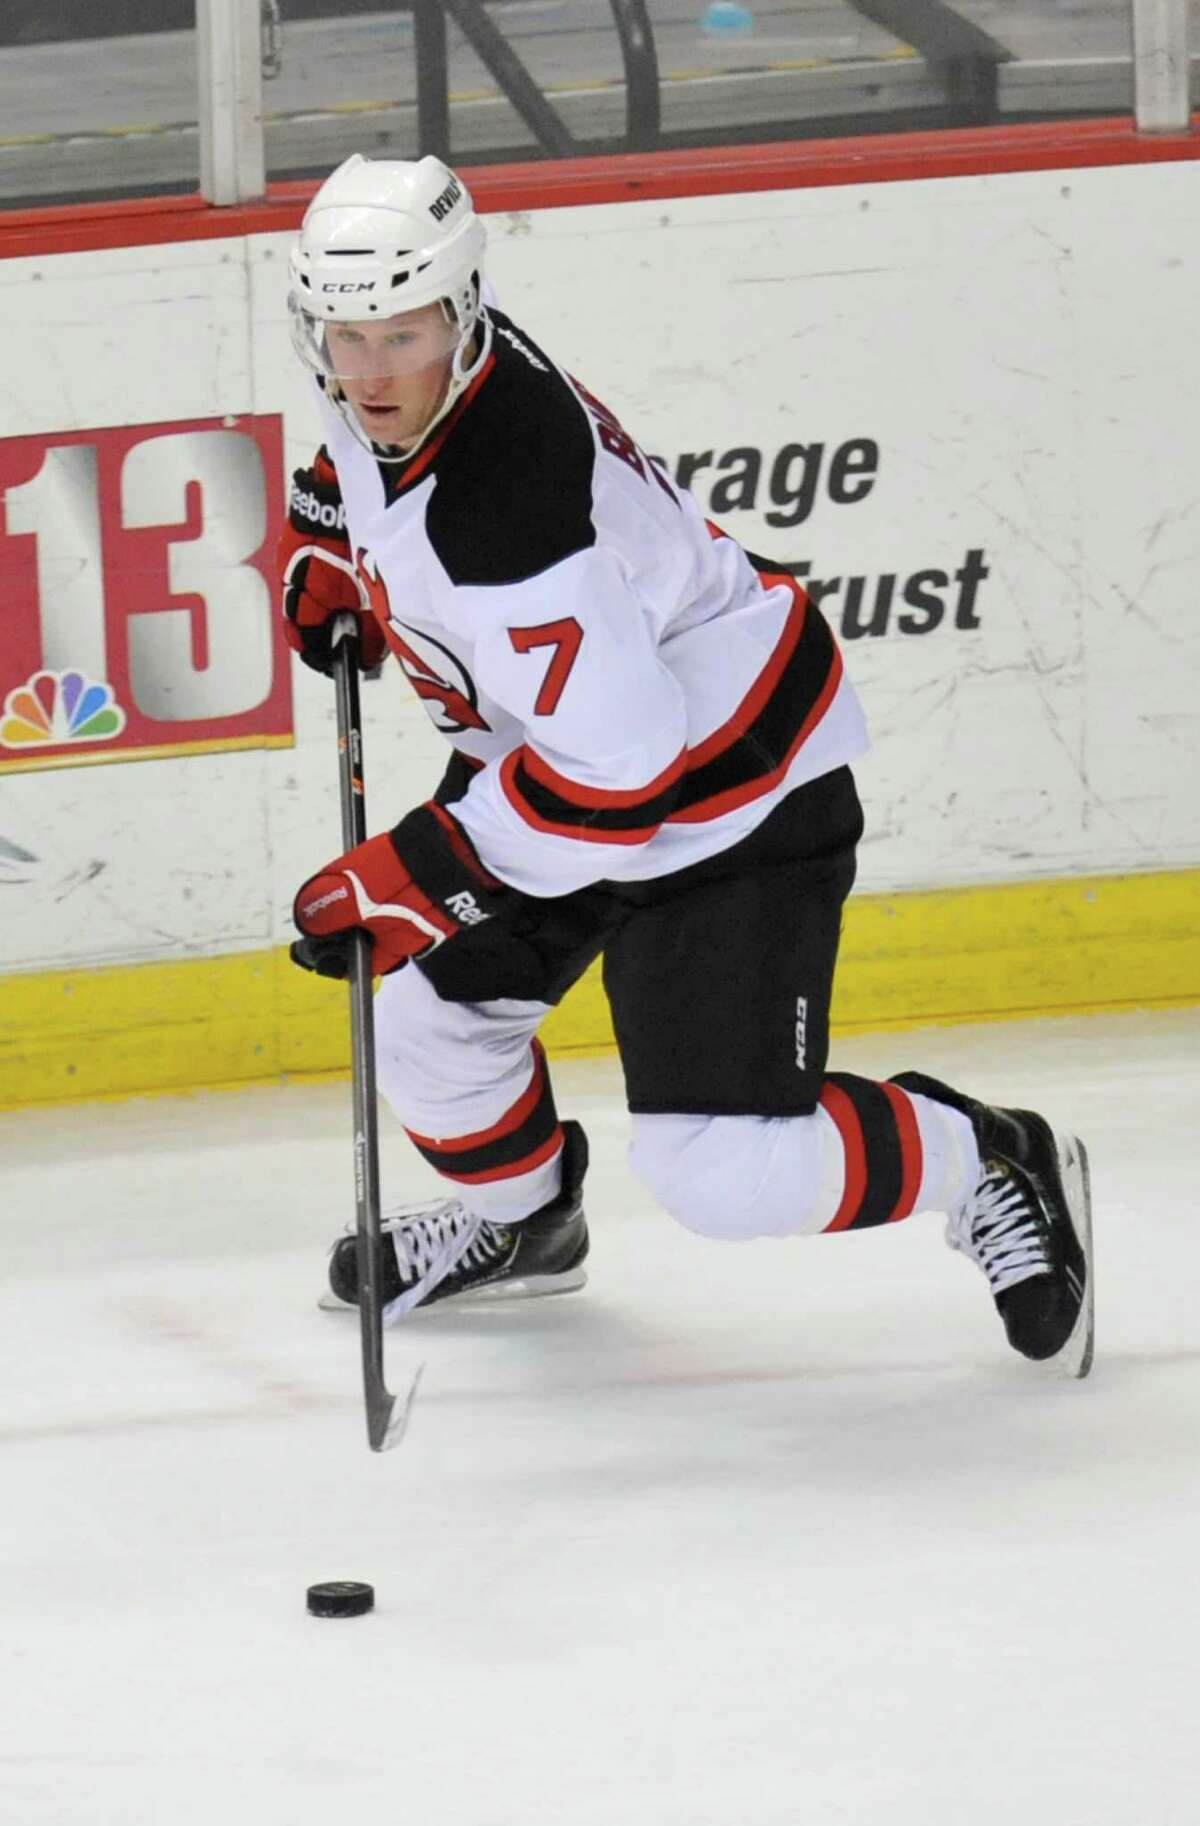 Albany Devils' Brandon Burlon (7) moves the puck against the Binghamton Senators' during the second period of an AHL hockey game in Albany, N.Y., Sunday, March 30, 2014. (Hans Pennink / Special to the Times Union) ORG XMIT: HP112